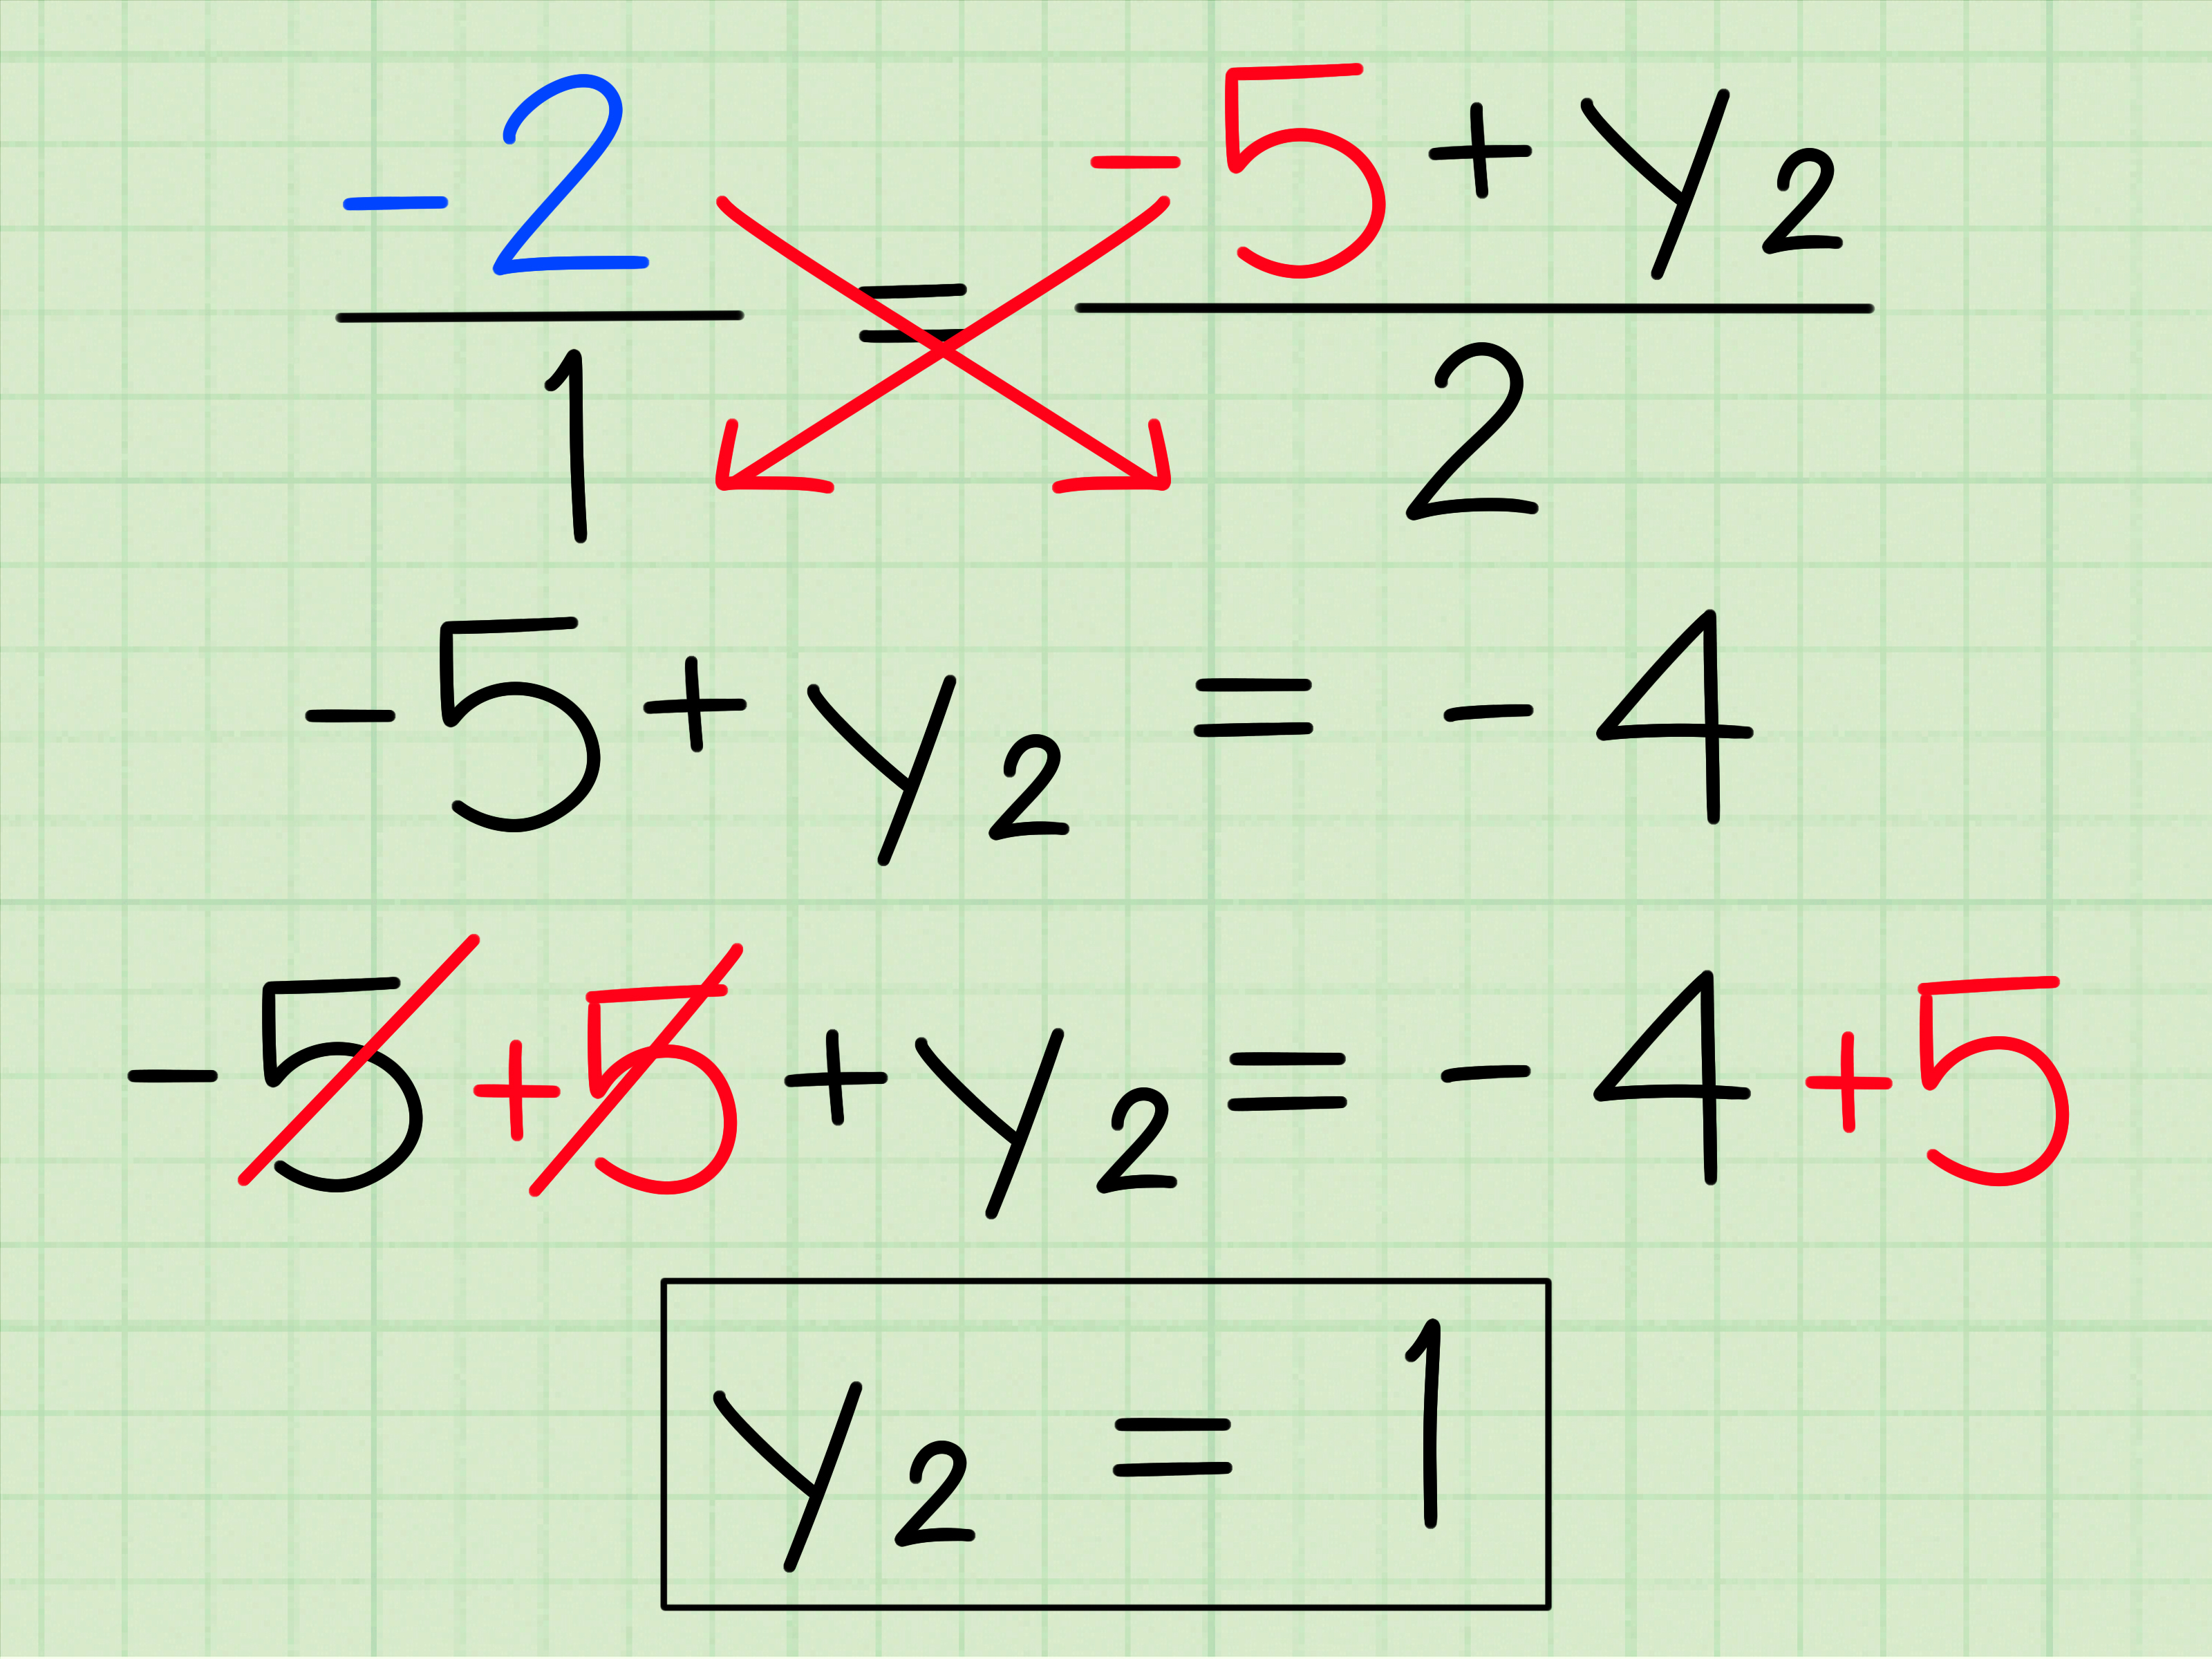 How To Find The Second Endpoint Algebraically When Given